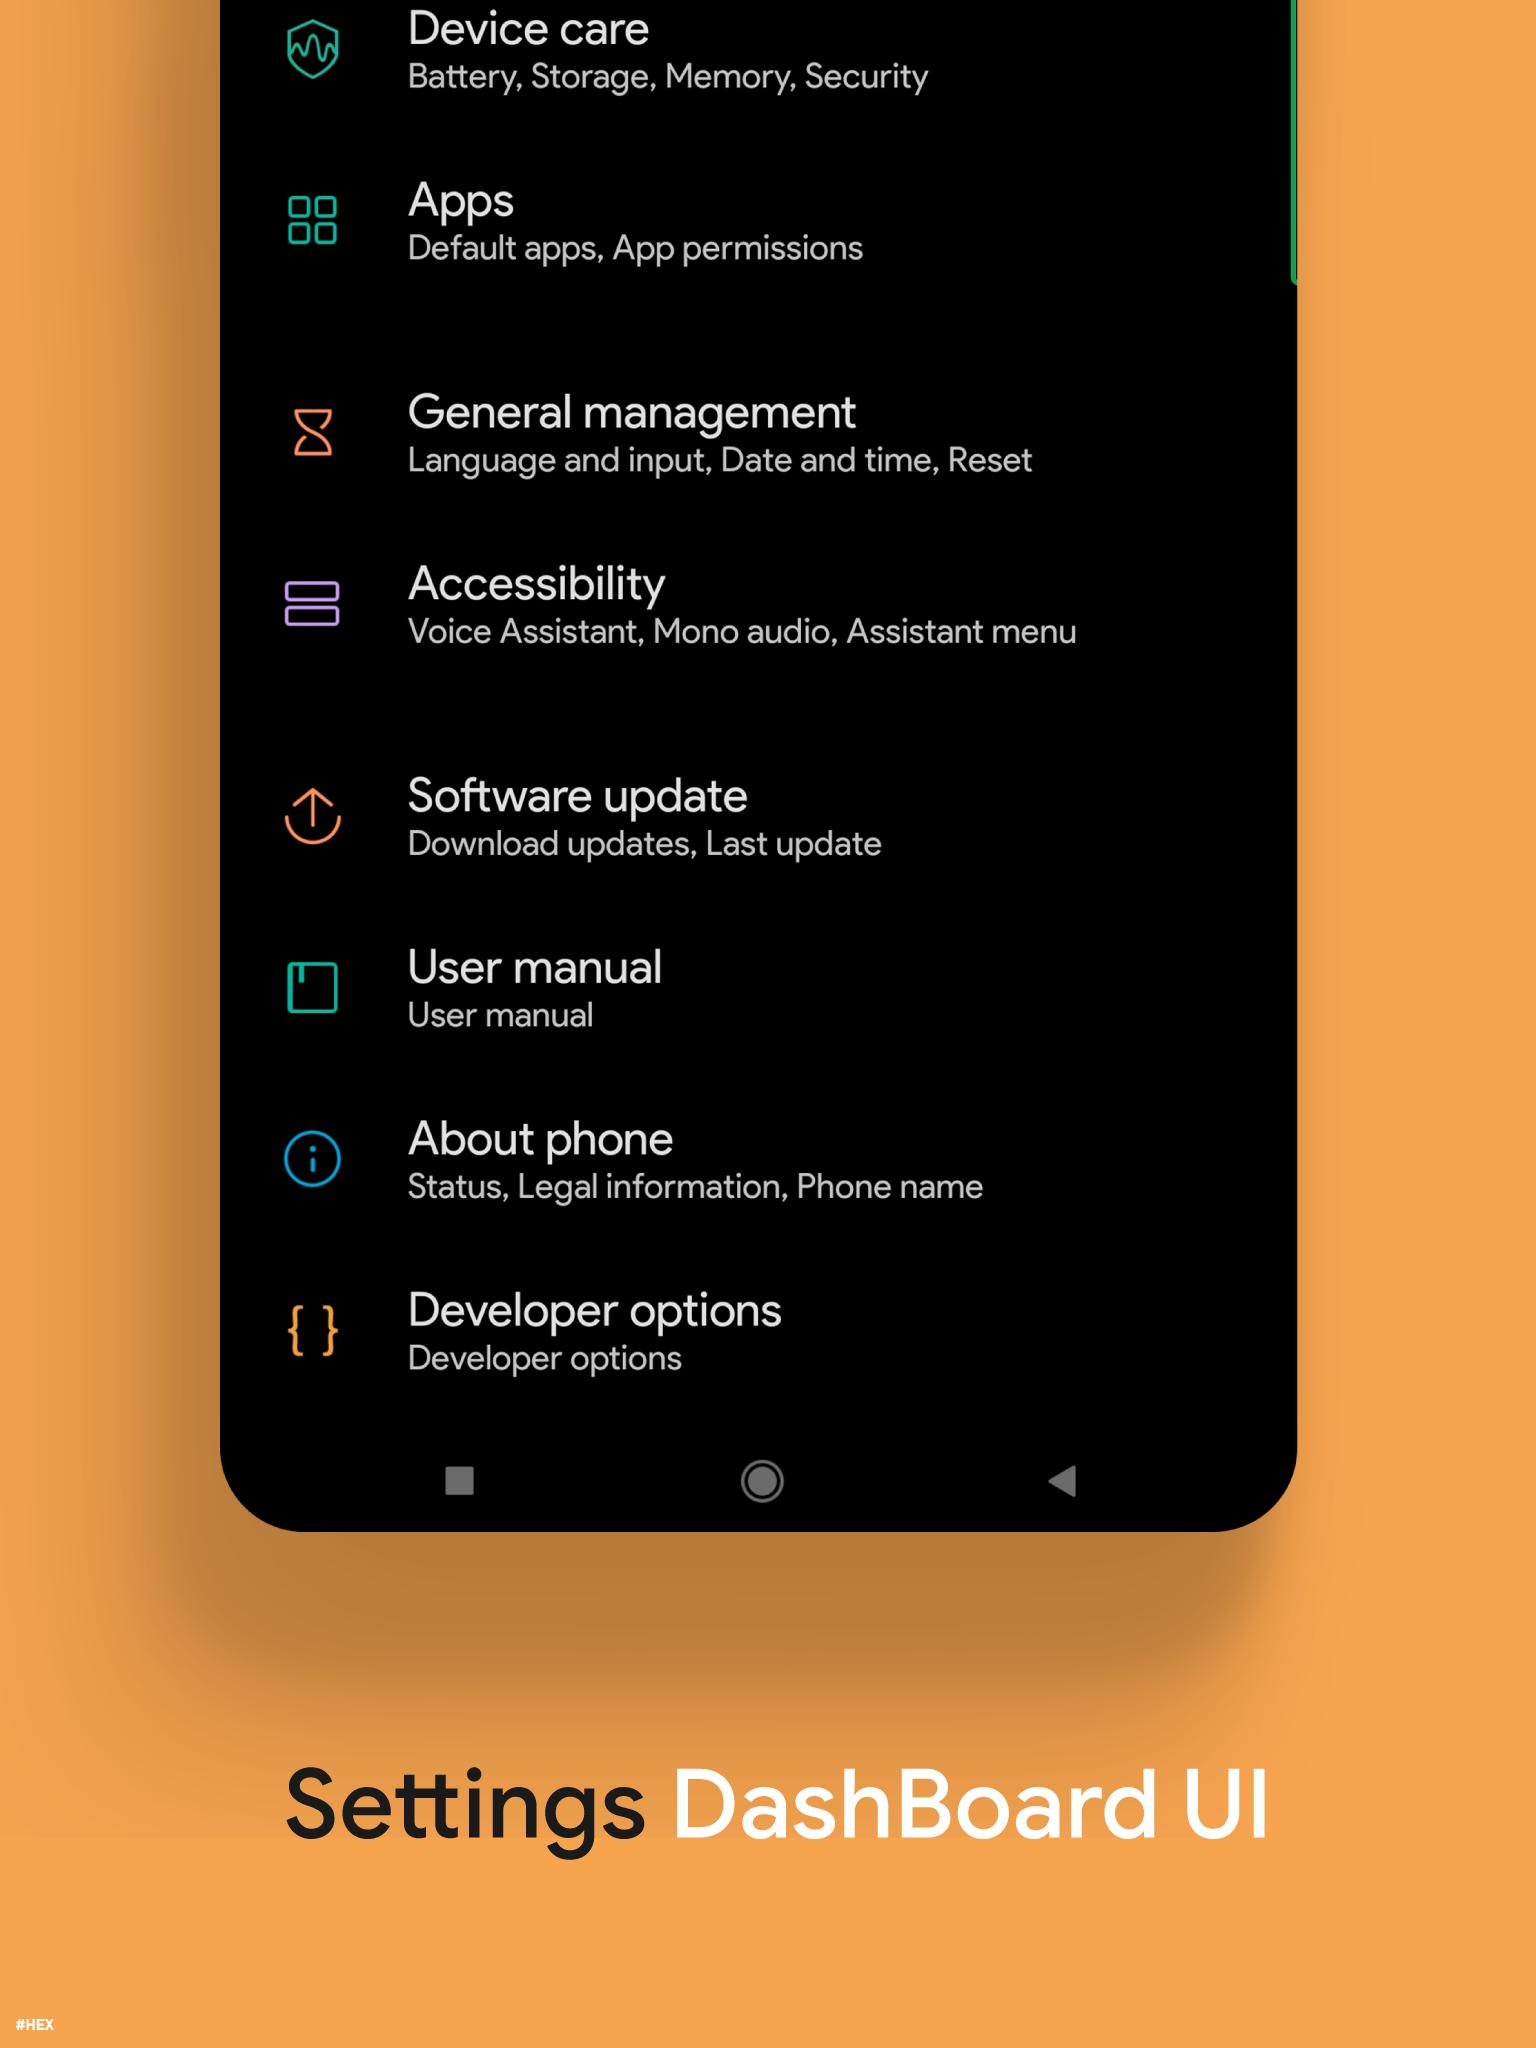 Hex Plugin - MIUI Skin for Samsung OneUI 2019 for Android